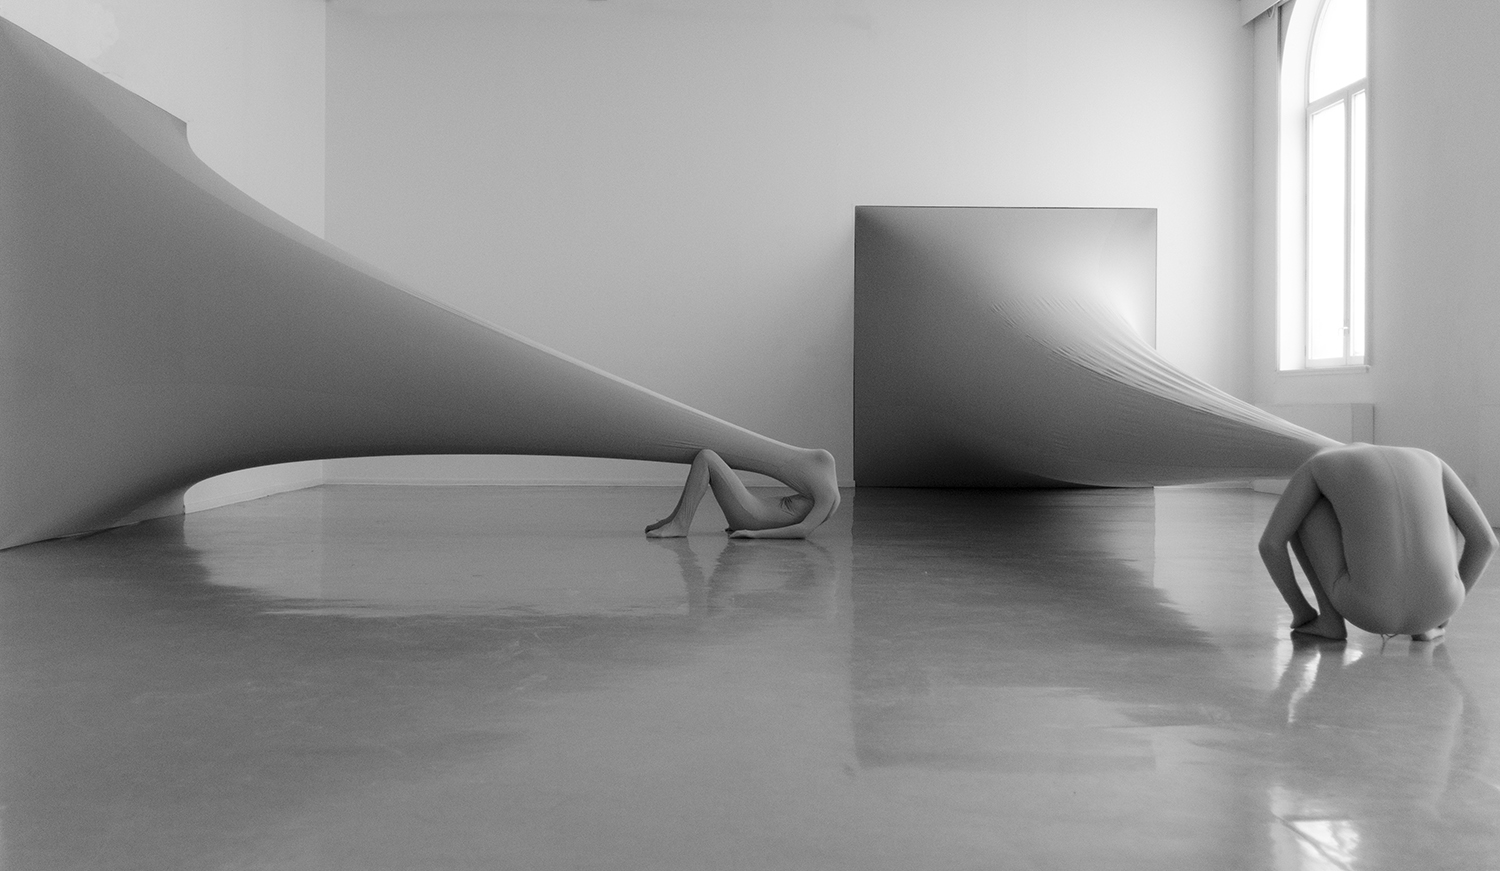 squared elasticity by Malin Bulow